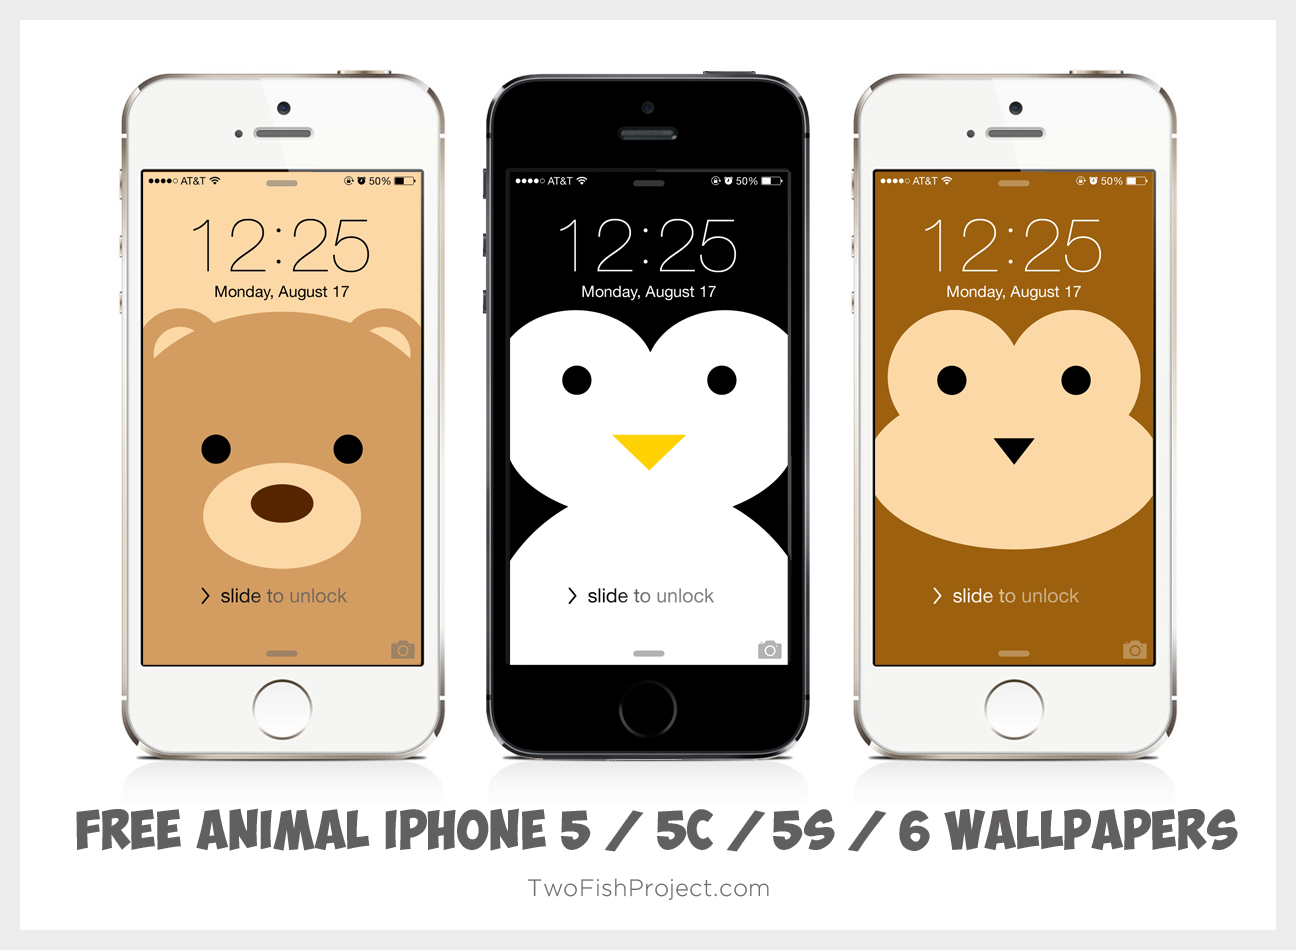 free animal iphone wallpapers twofish